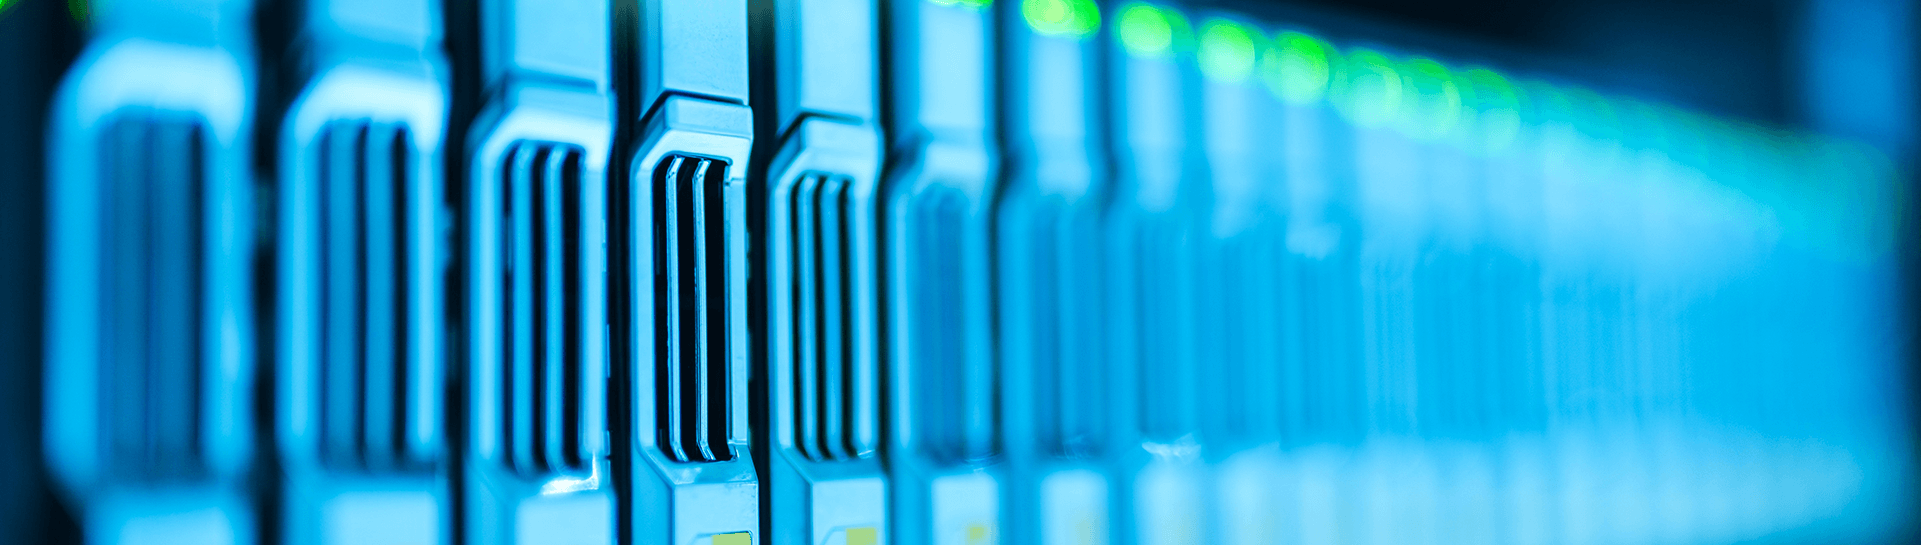 A close up of computer servers